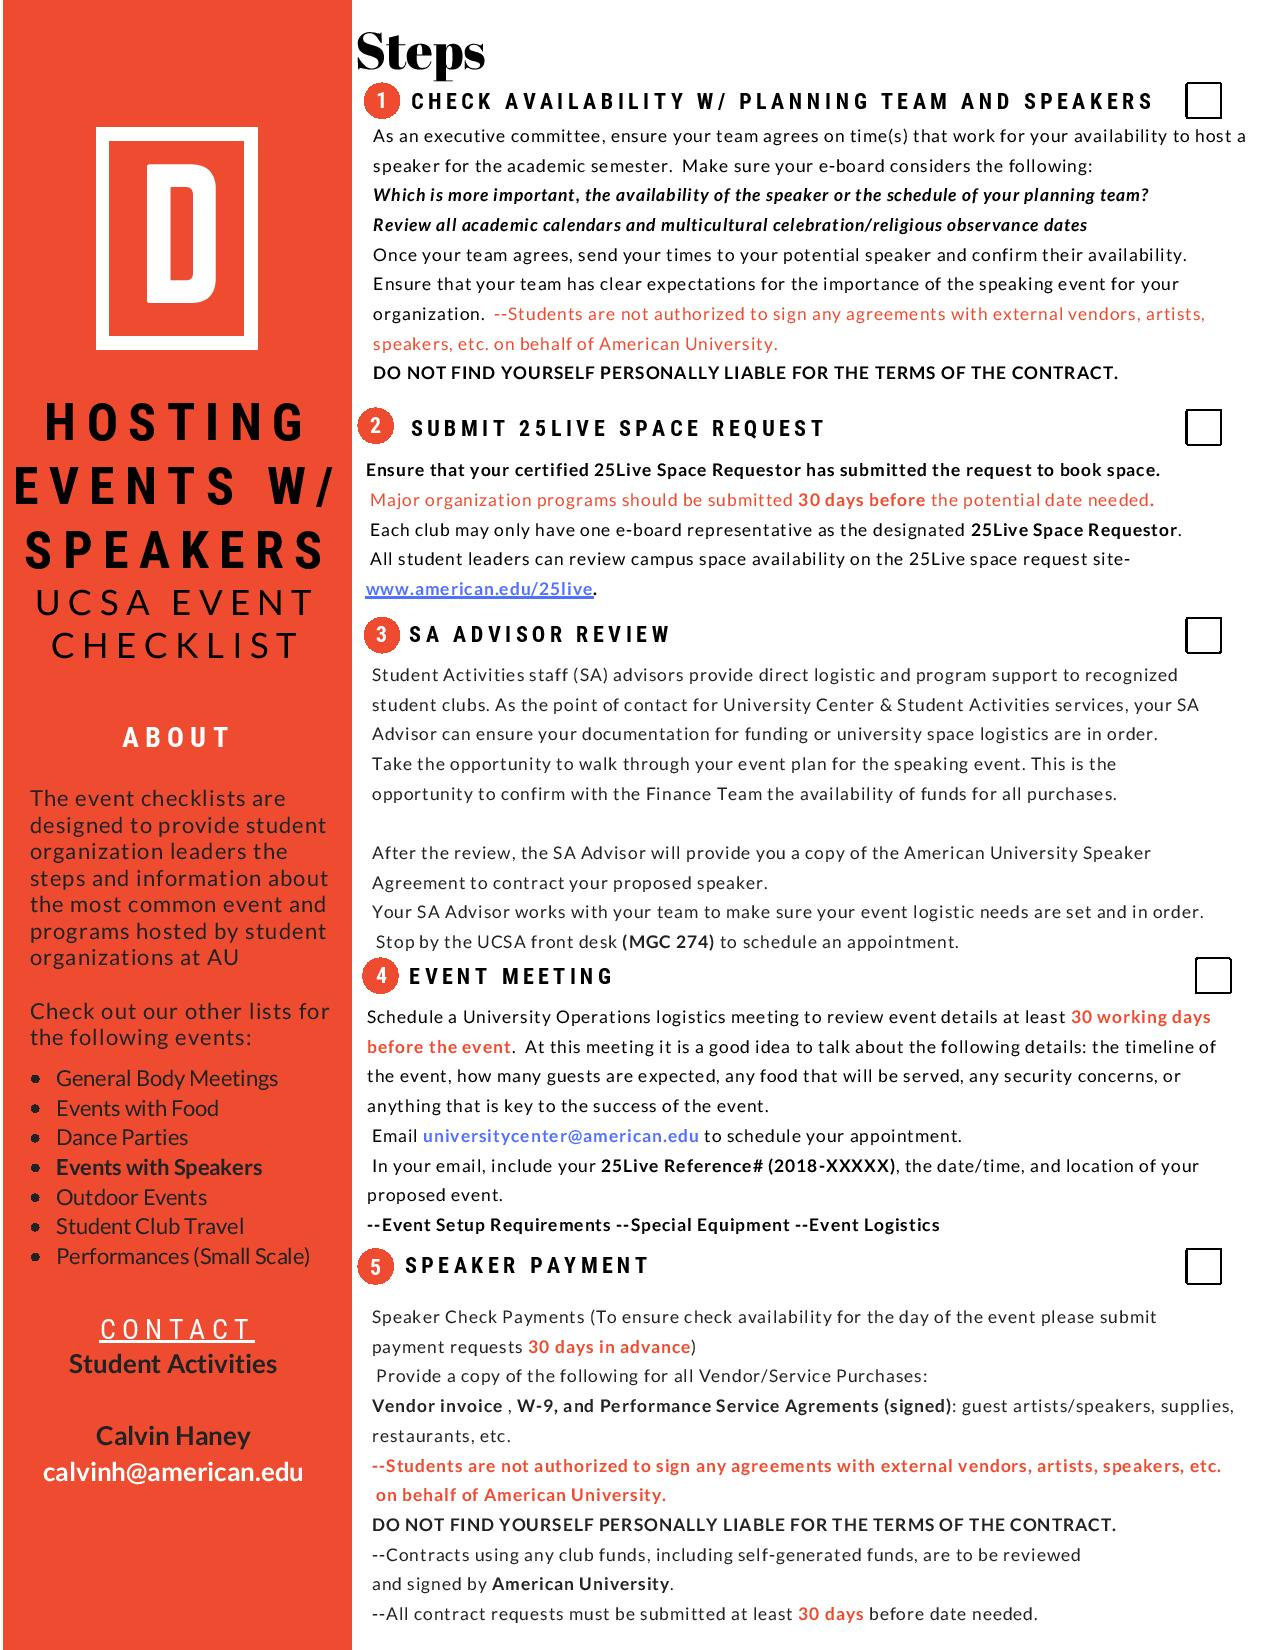 Events with Speakers Checklist